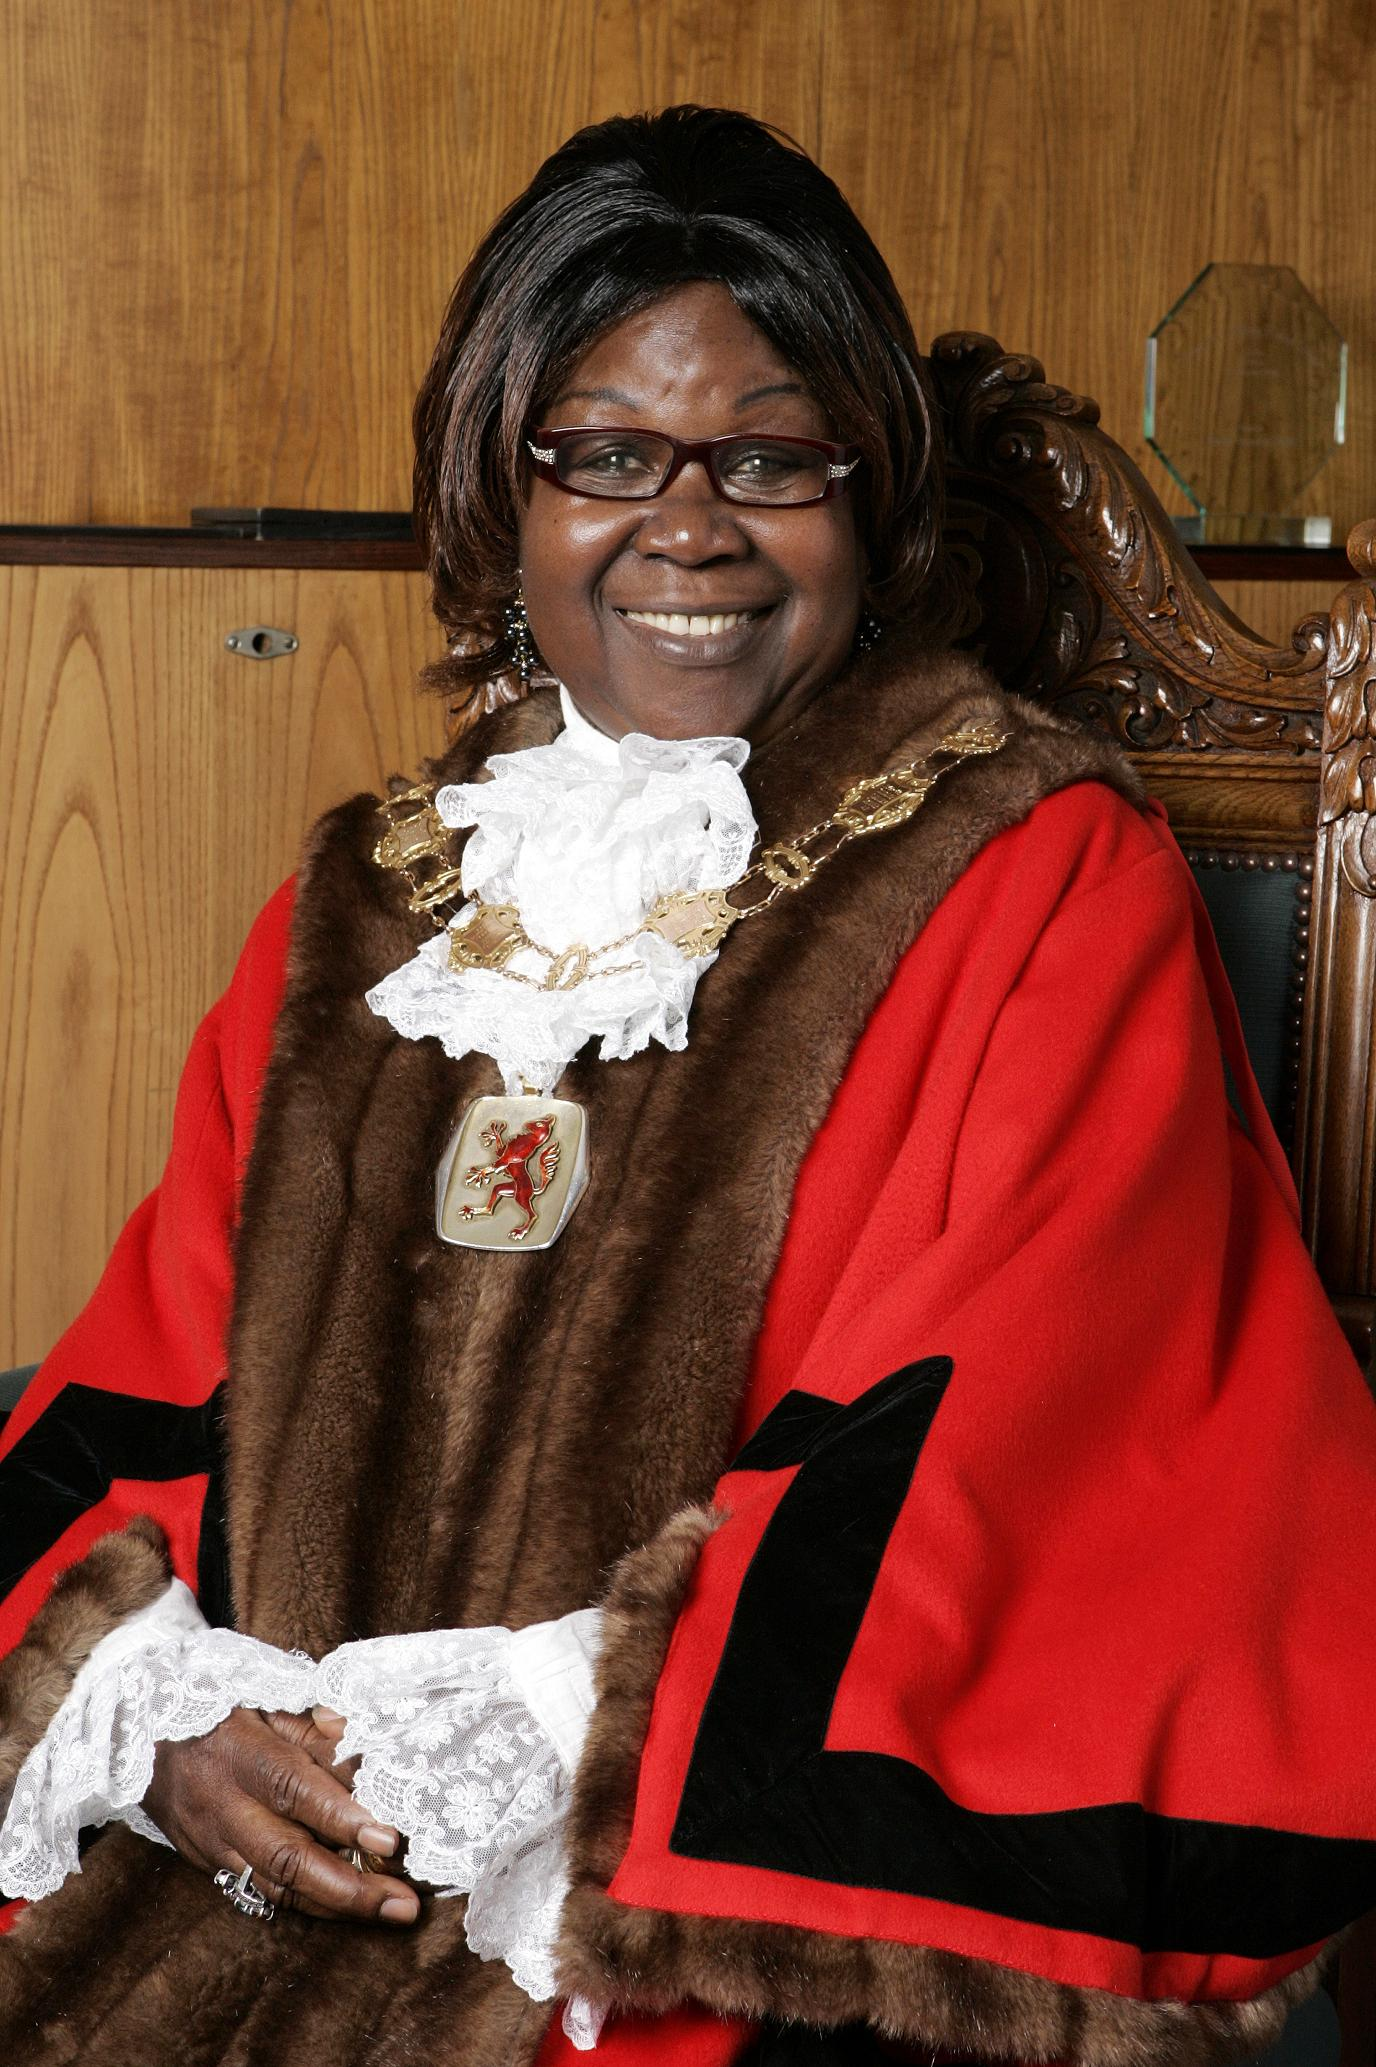 The new Mayor sits in her formal red robes.